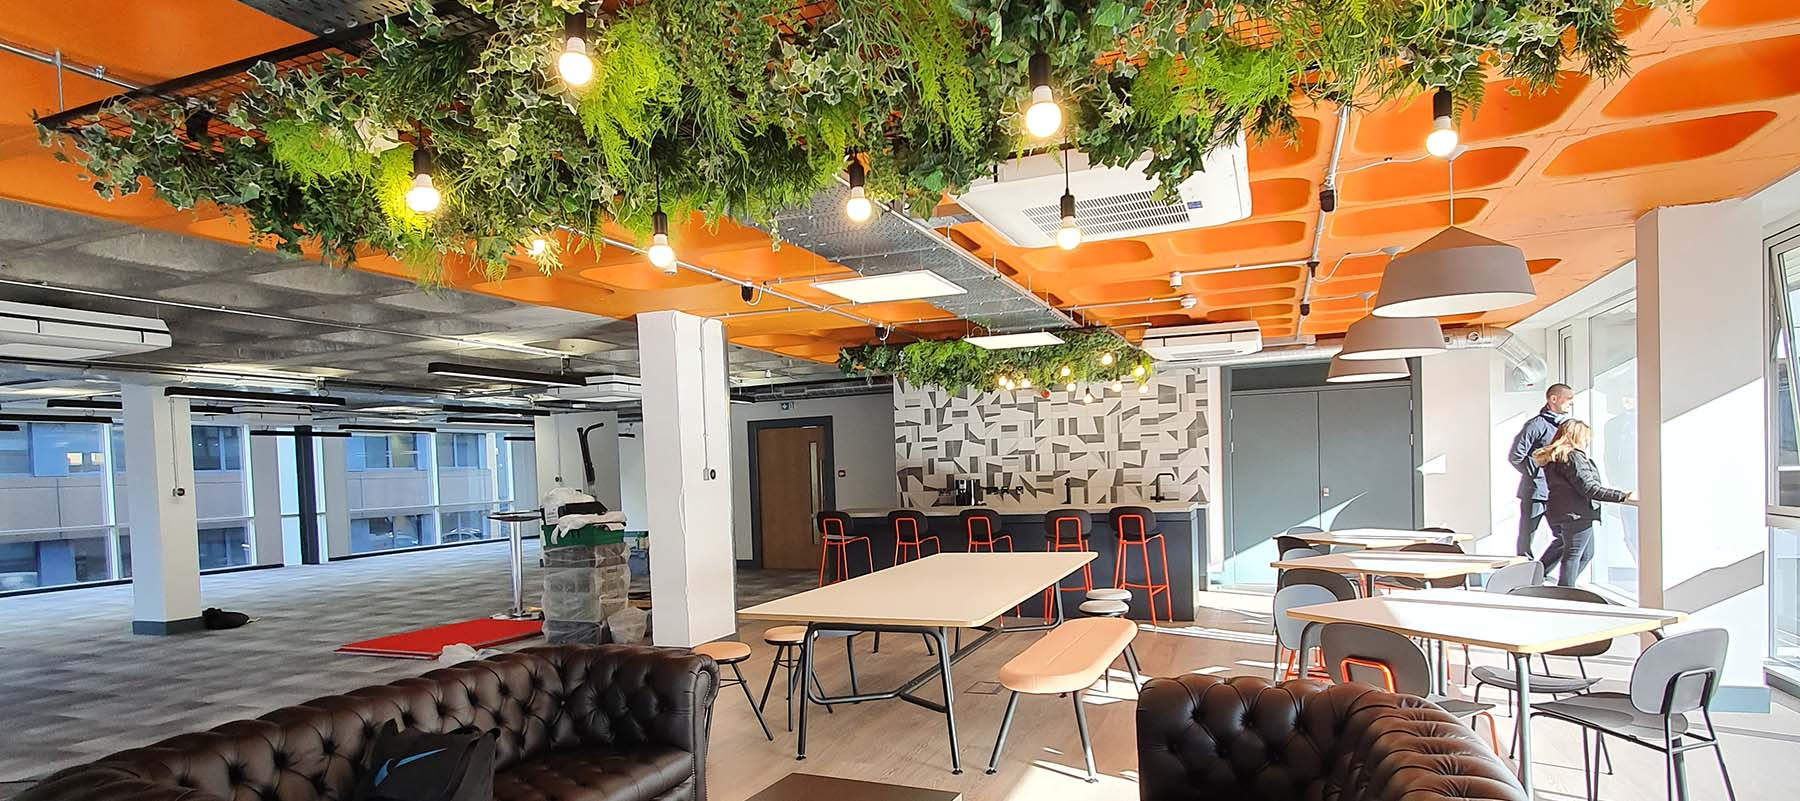 Modern city centre office space featuring green ceiling sections of mixed artificial trailing ivies, plants and ferns